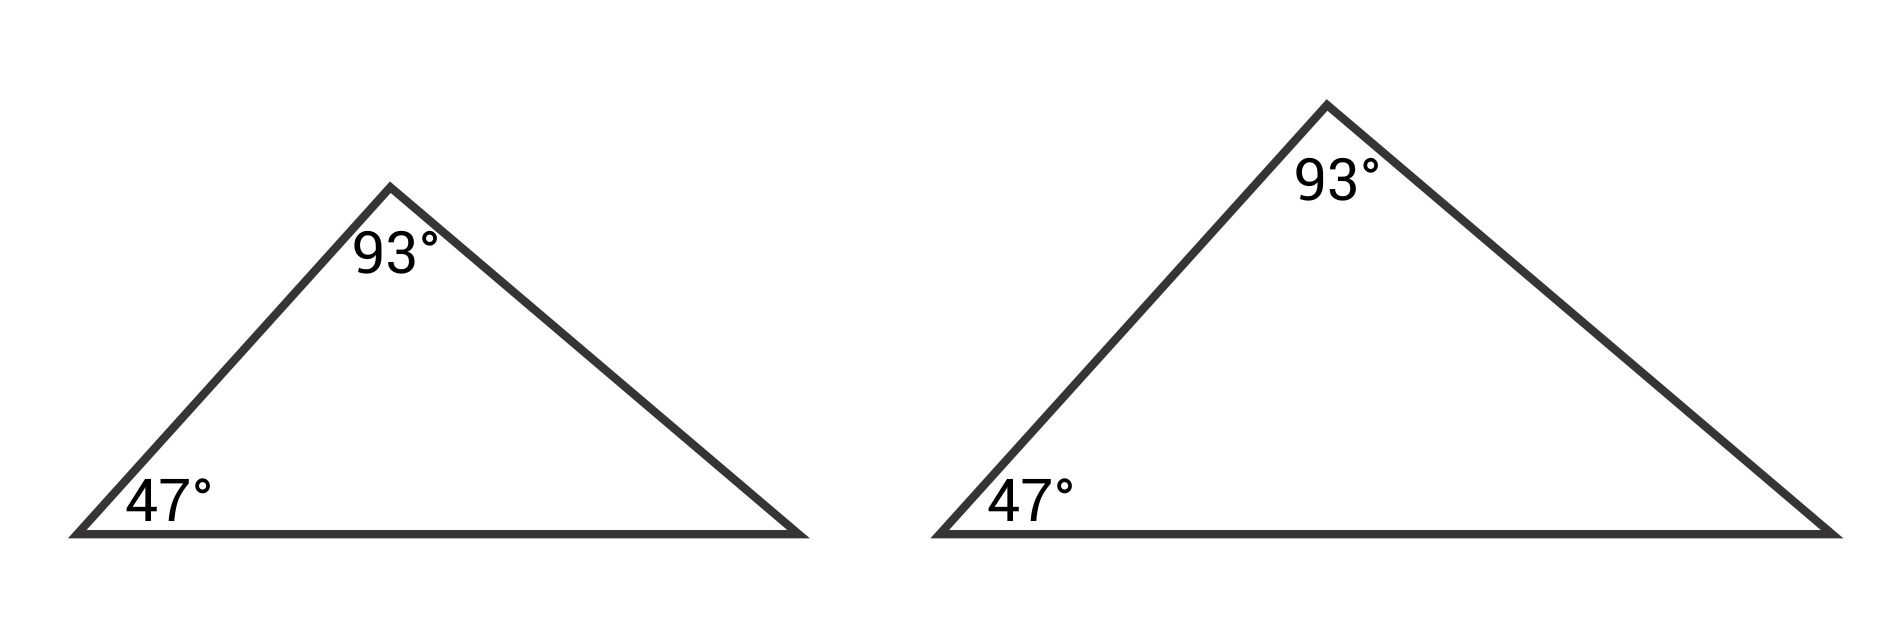 Similar triangles with angles 93 and 47 degrees versus 93 and 47 degrees